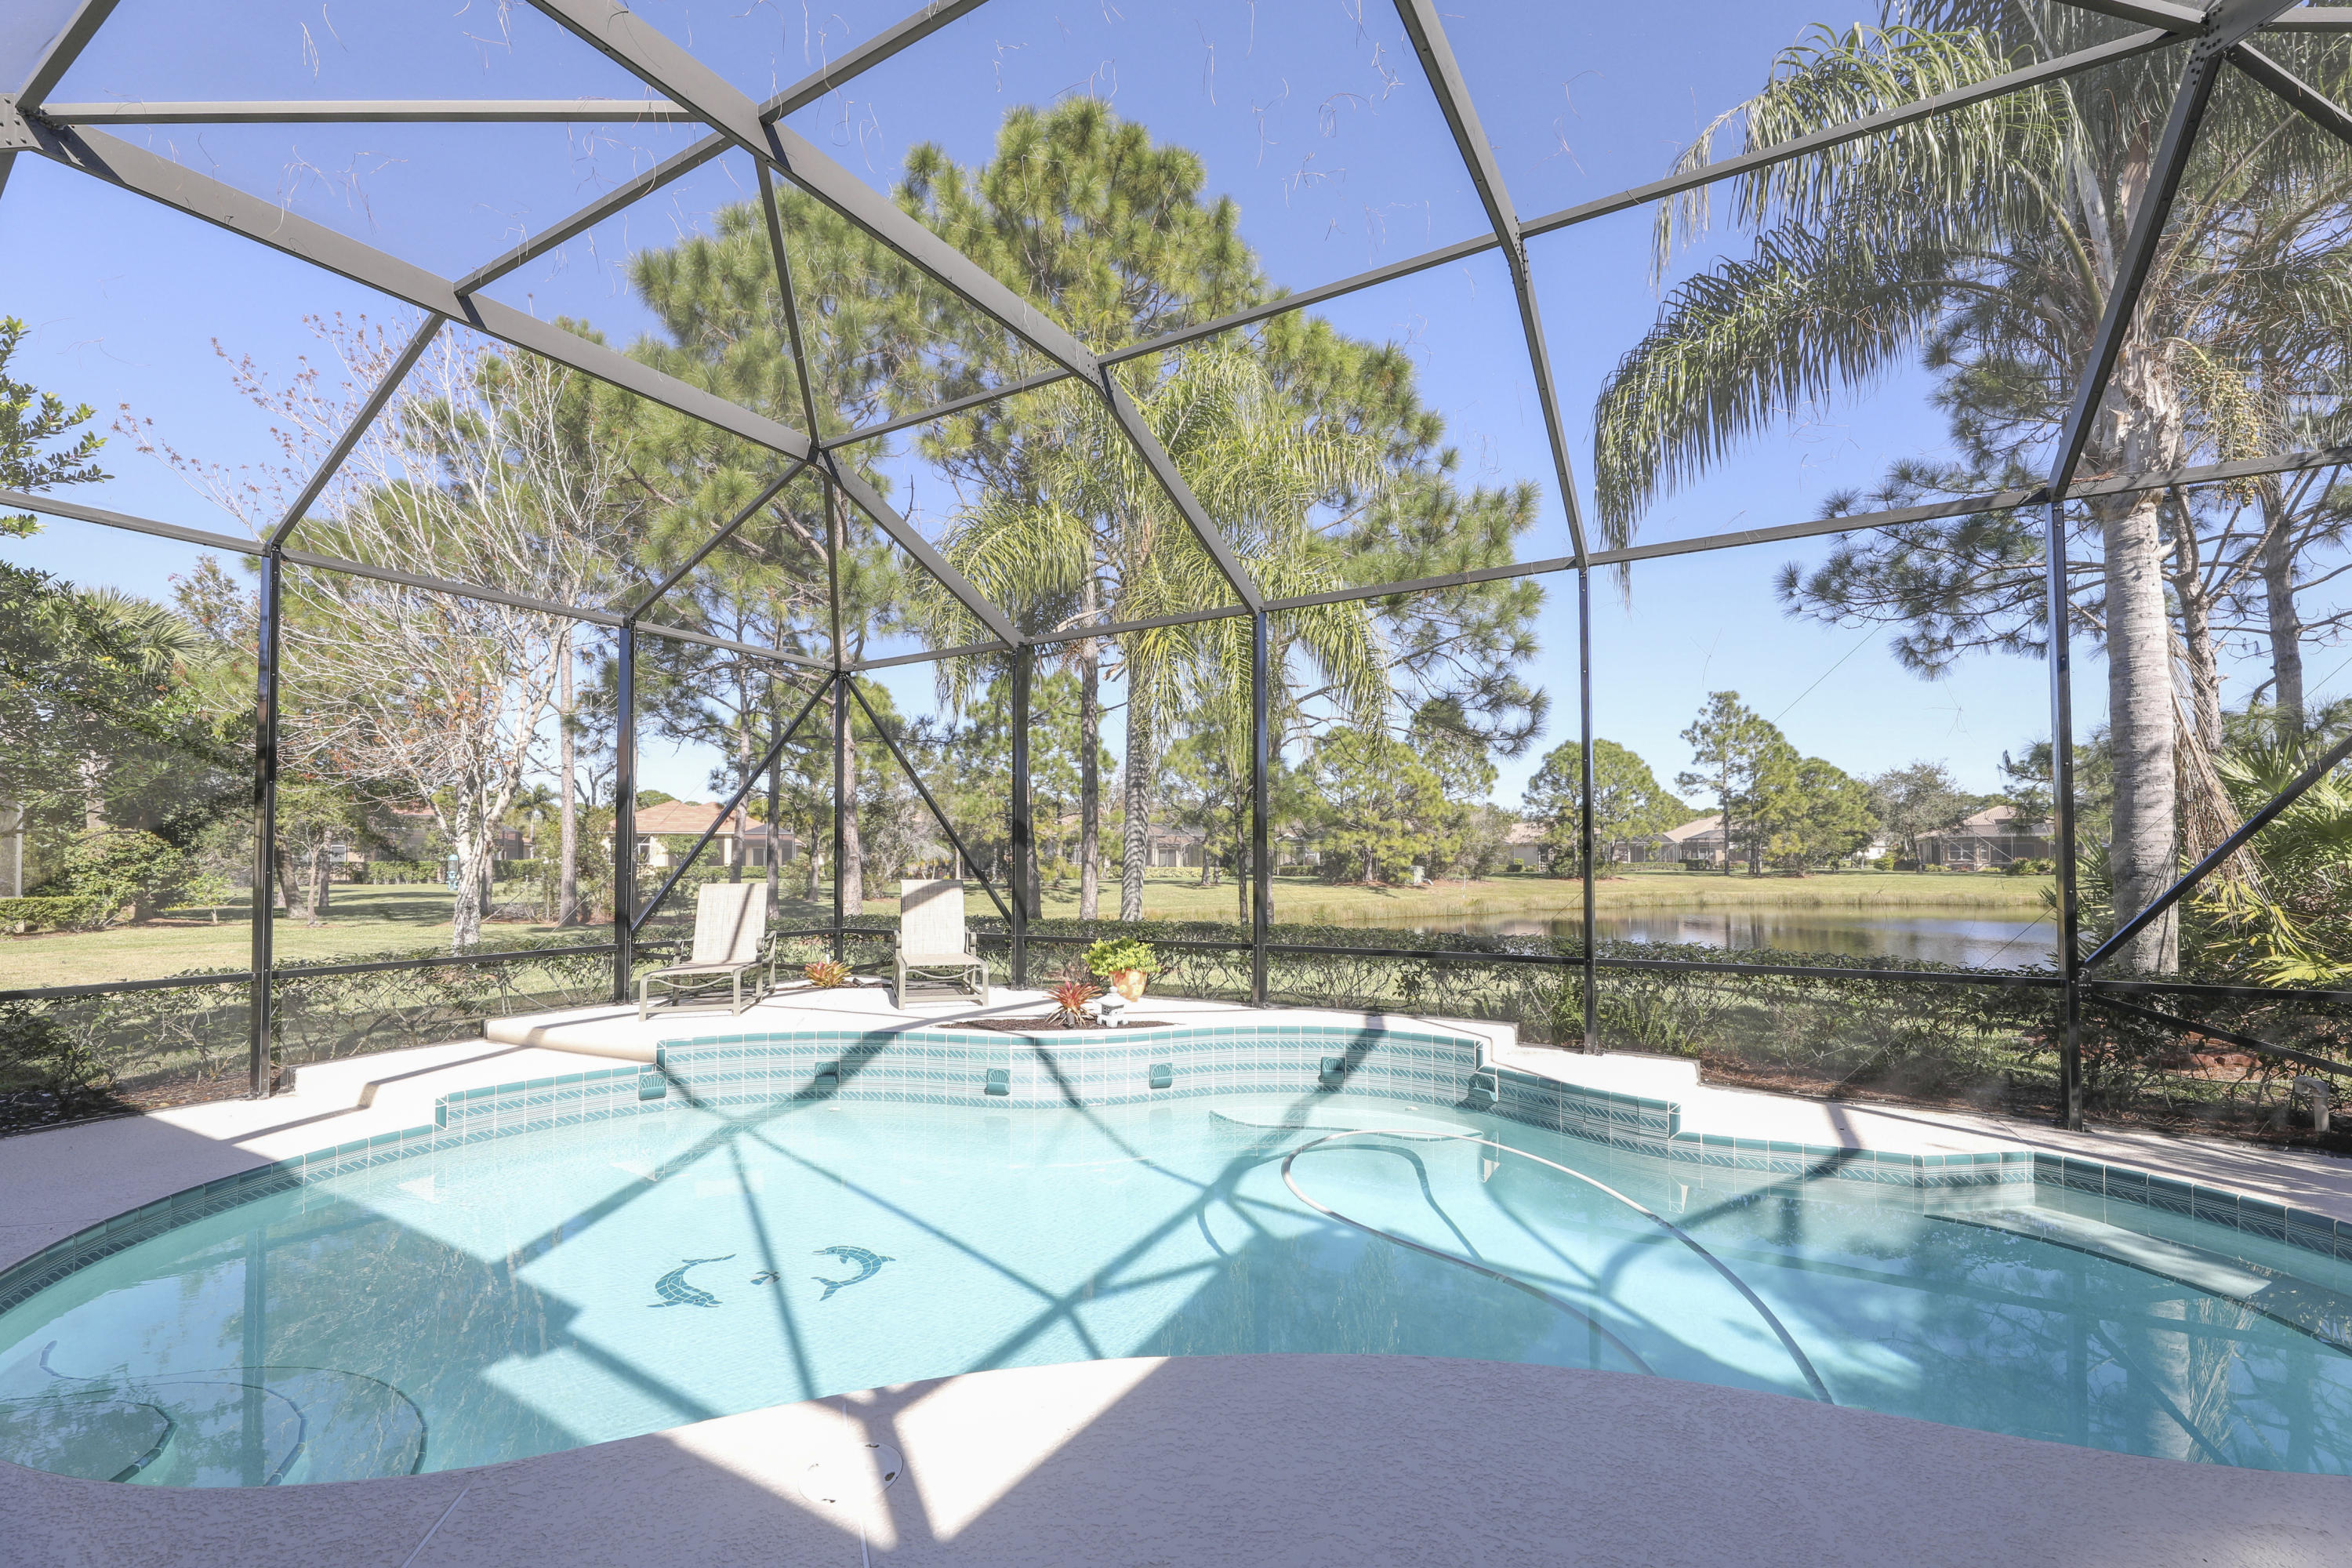 7653 Greenbrier Circle, Port Saint Lucie, FL 34986